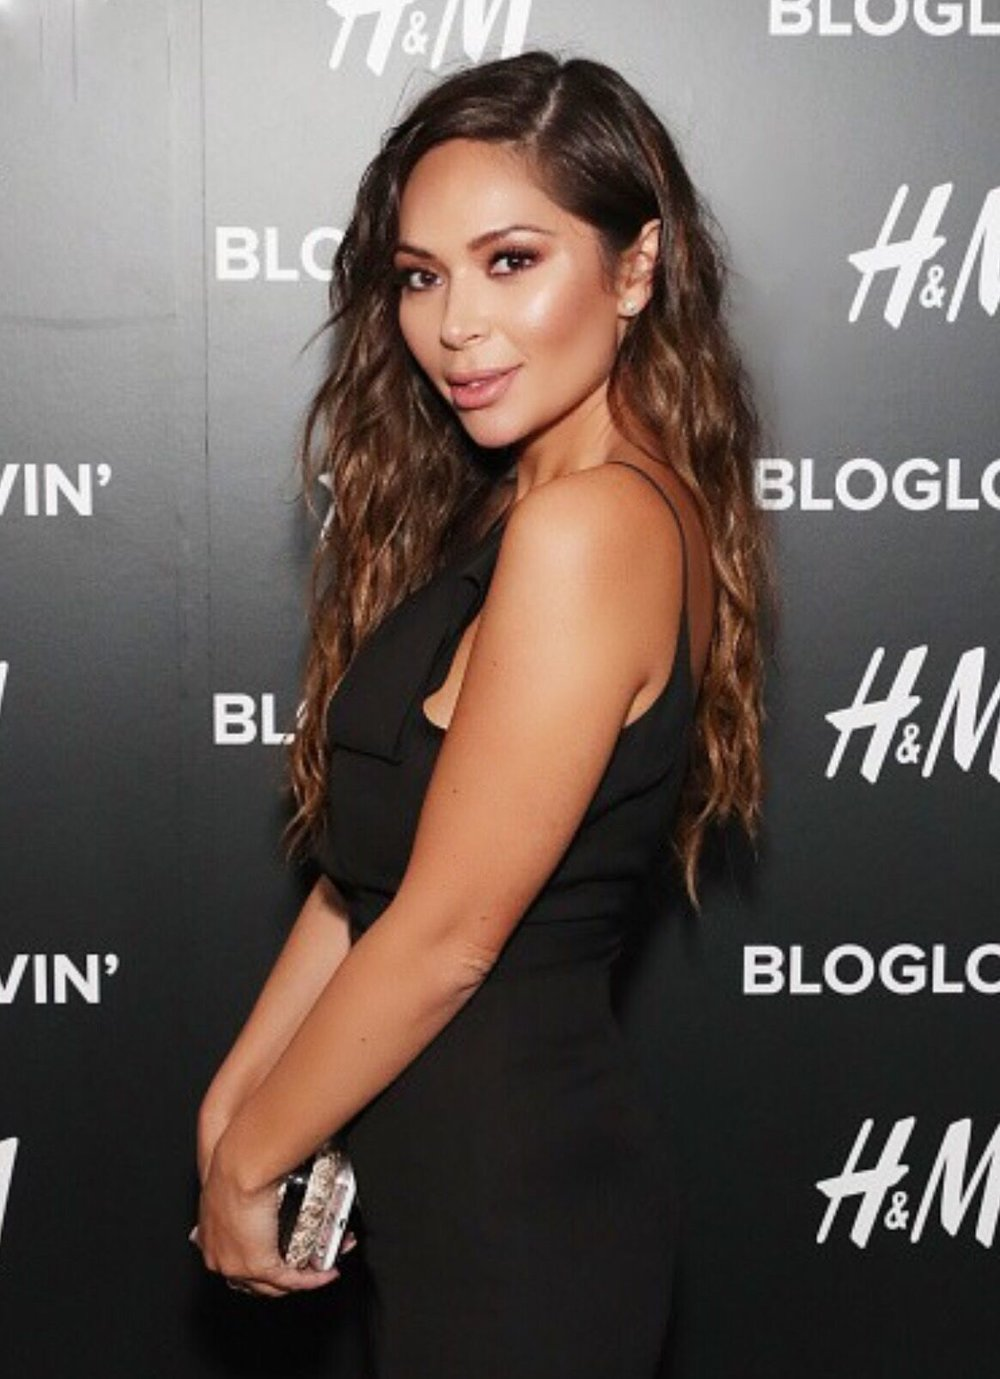 Marianna Hewitt Bloglovin Awards